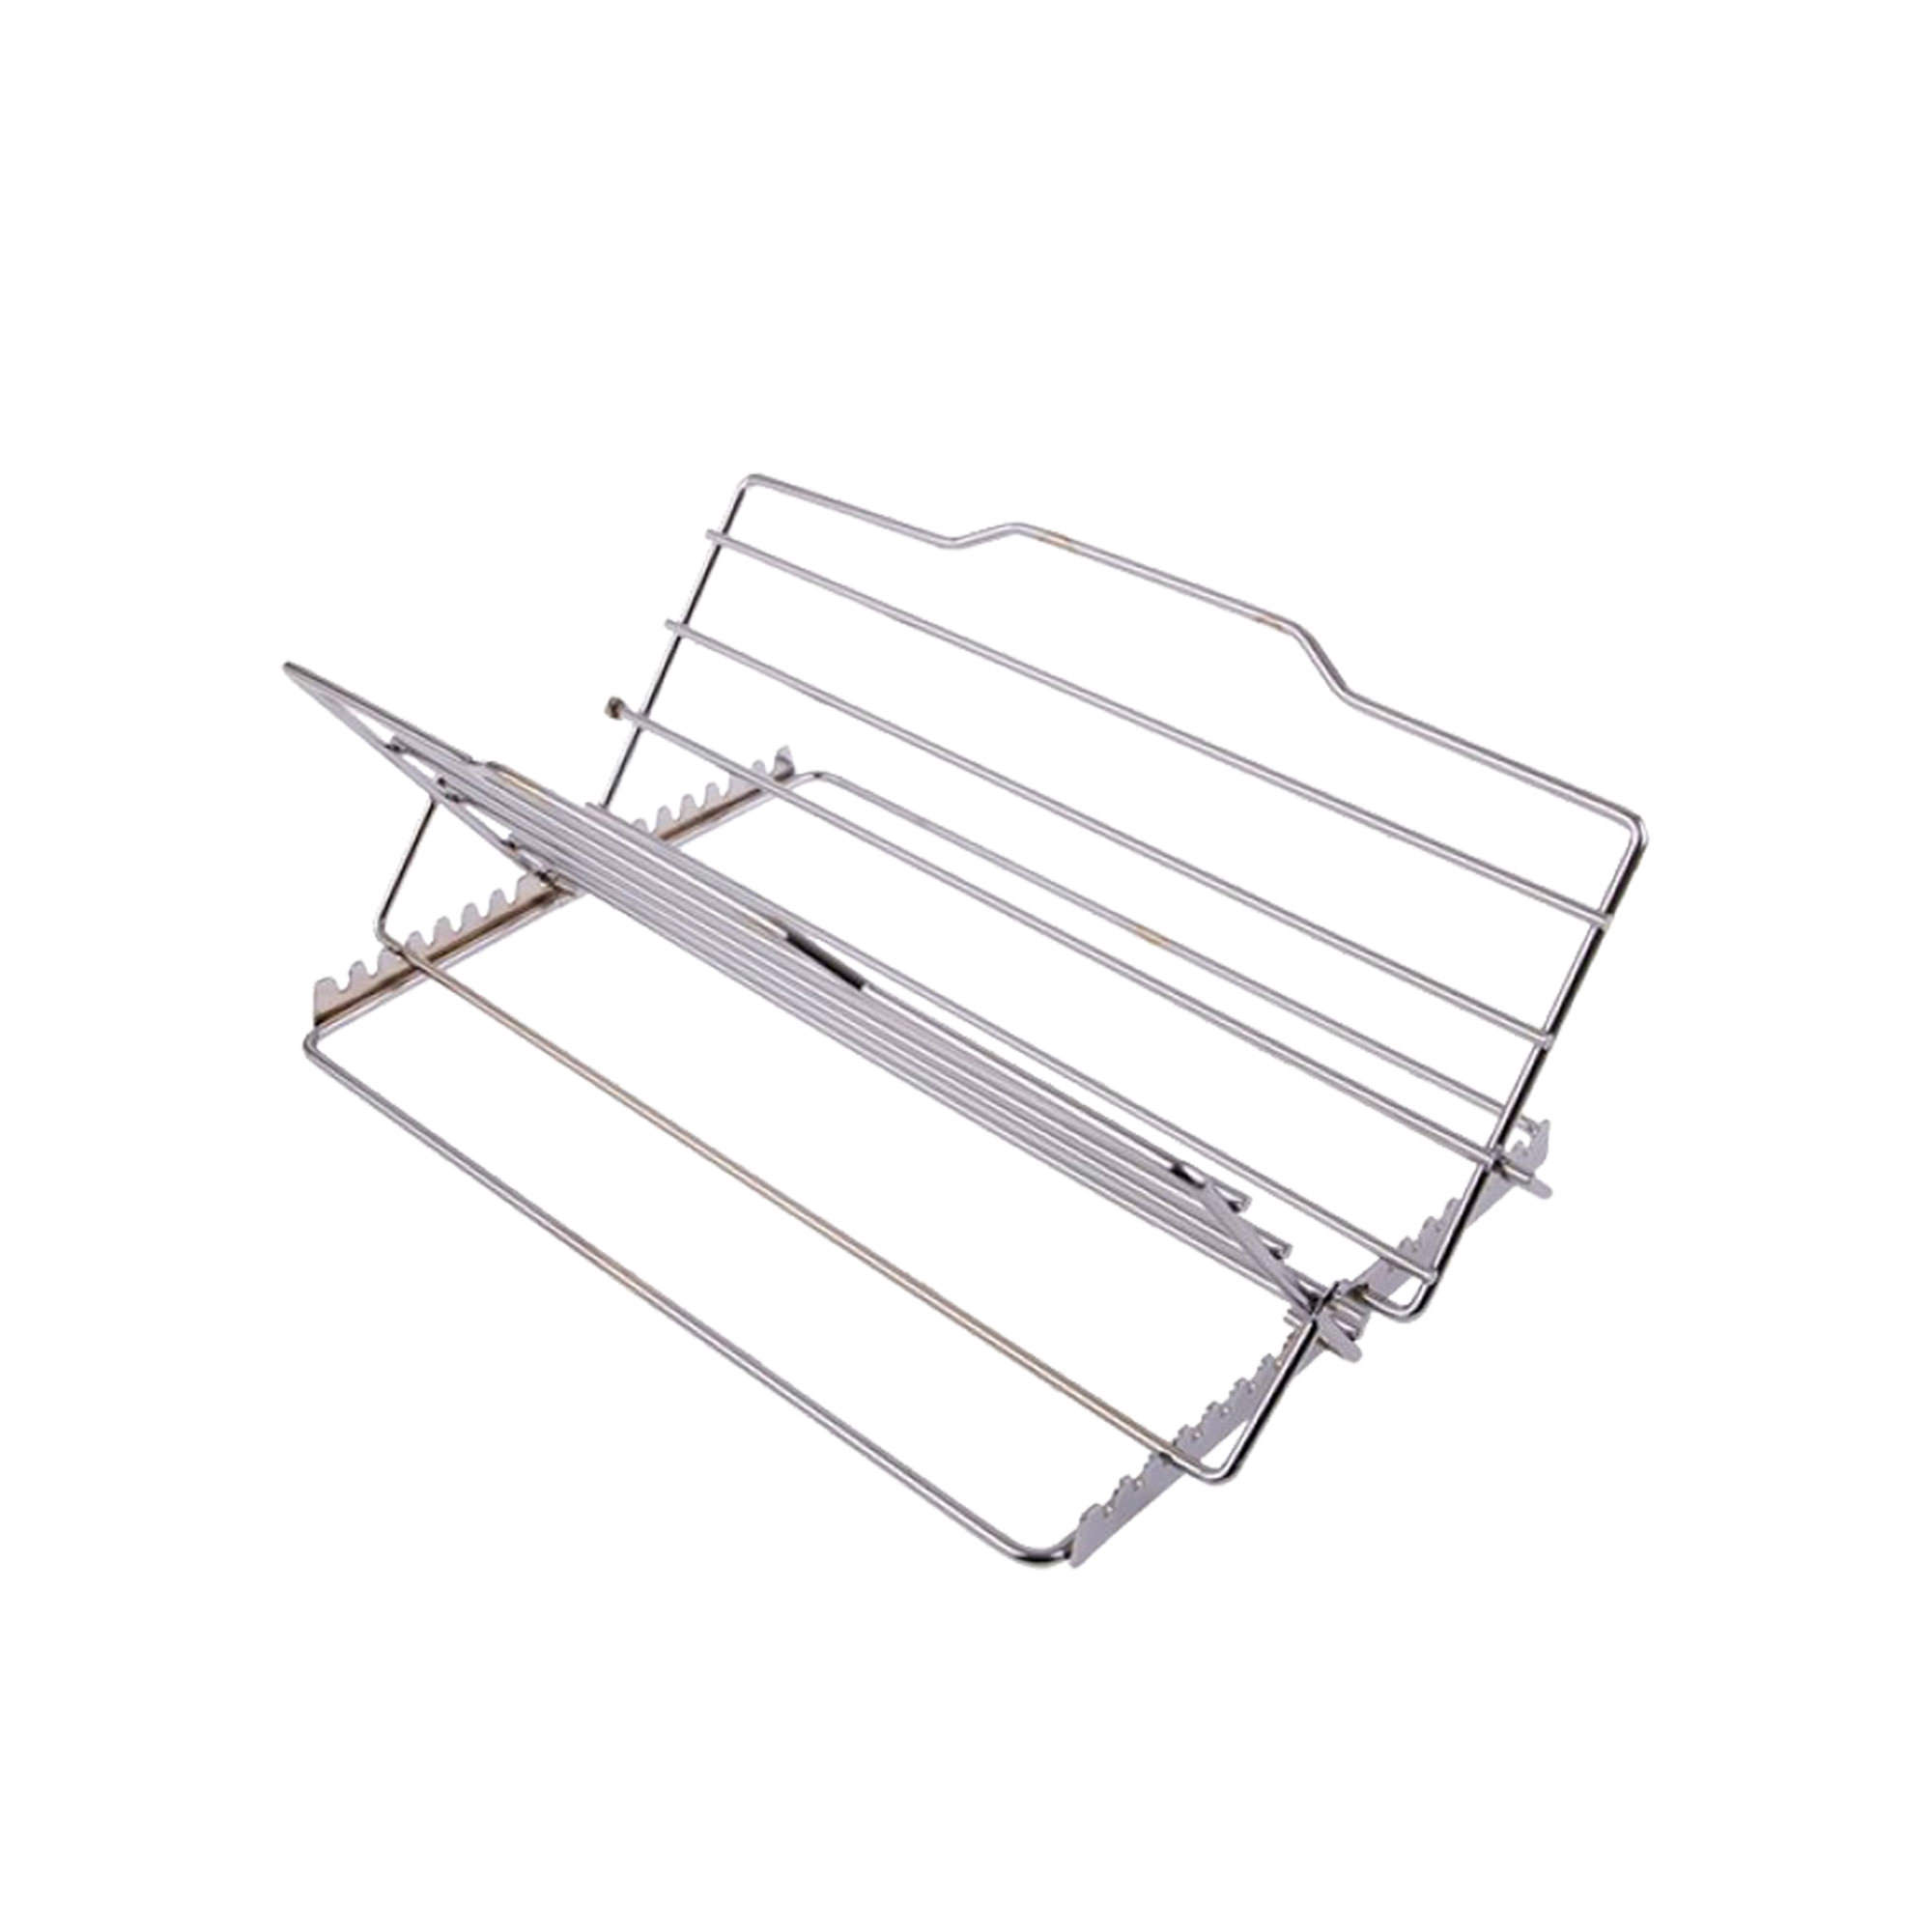 Appetito Adjustable Roasting Rack 25x19cm